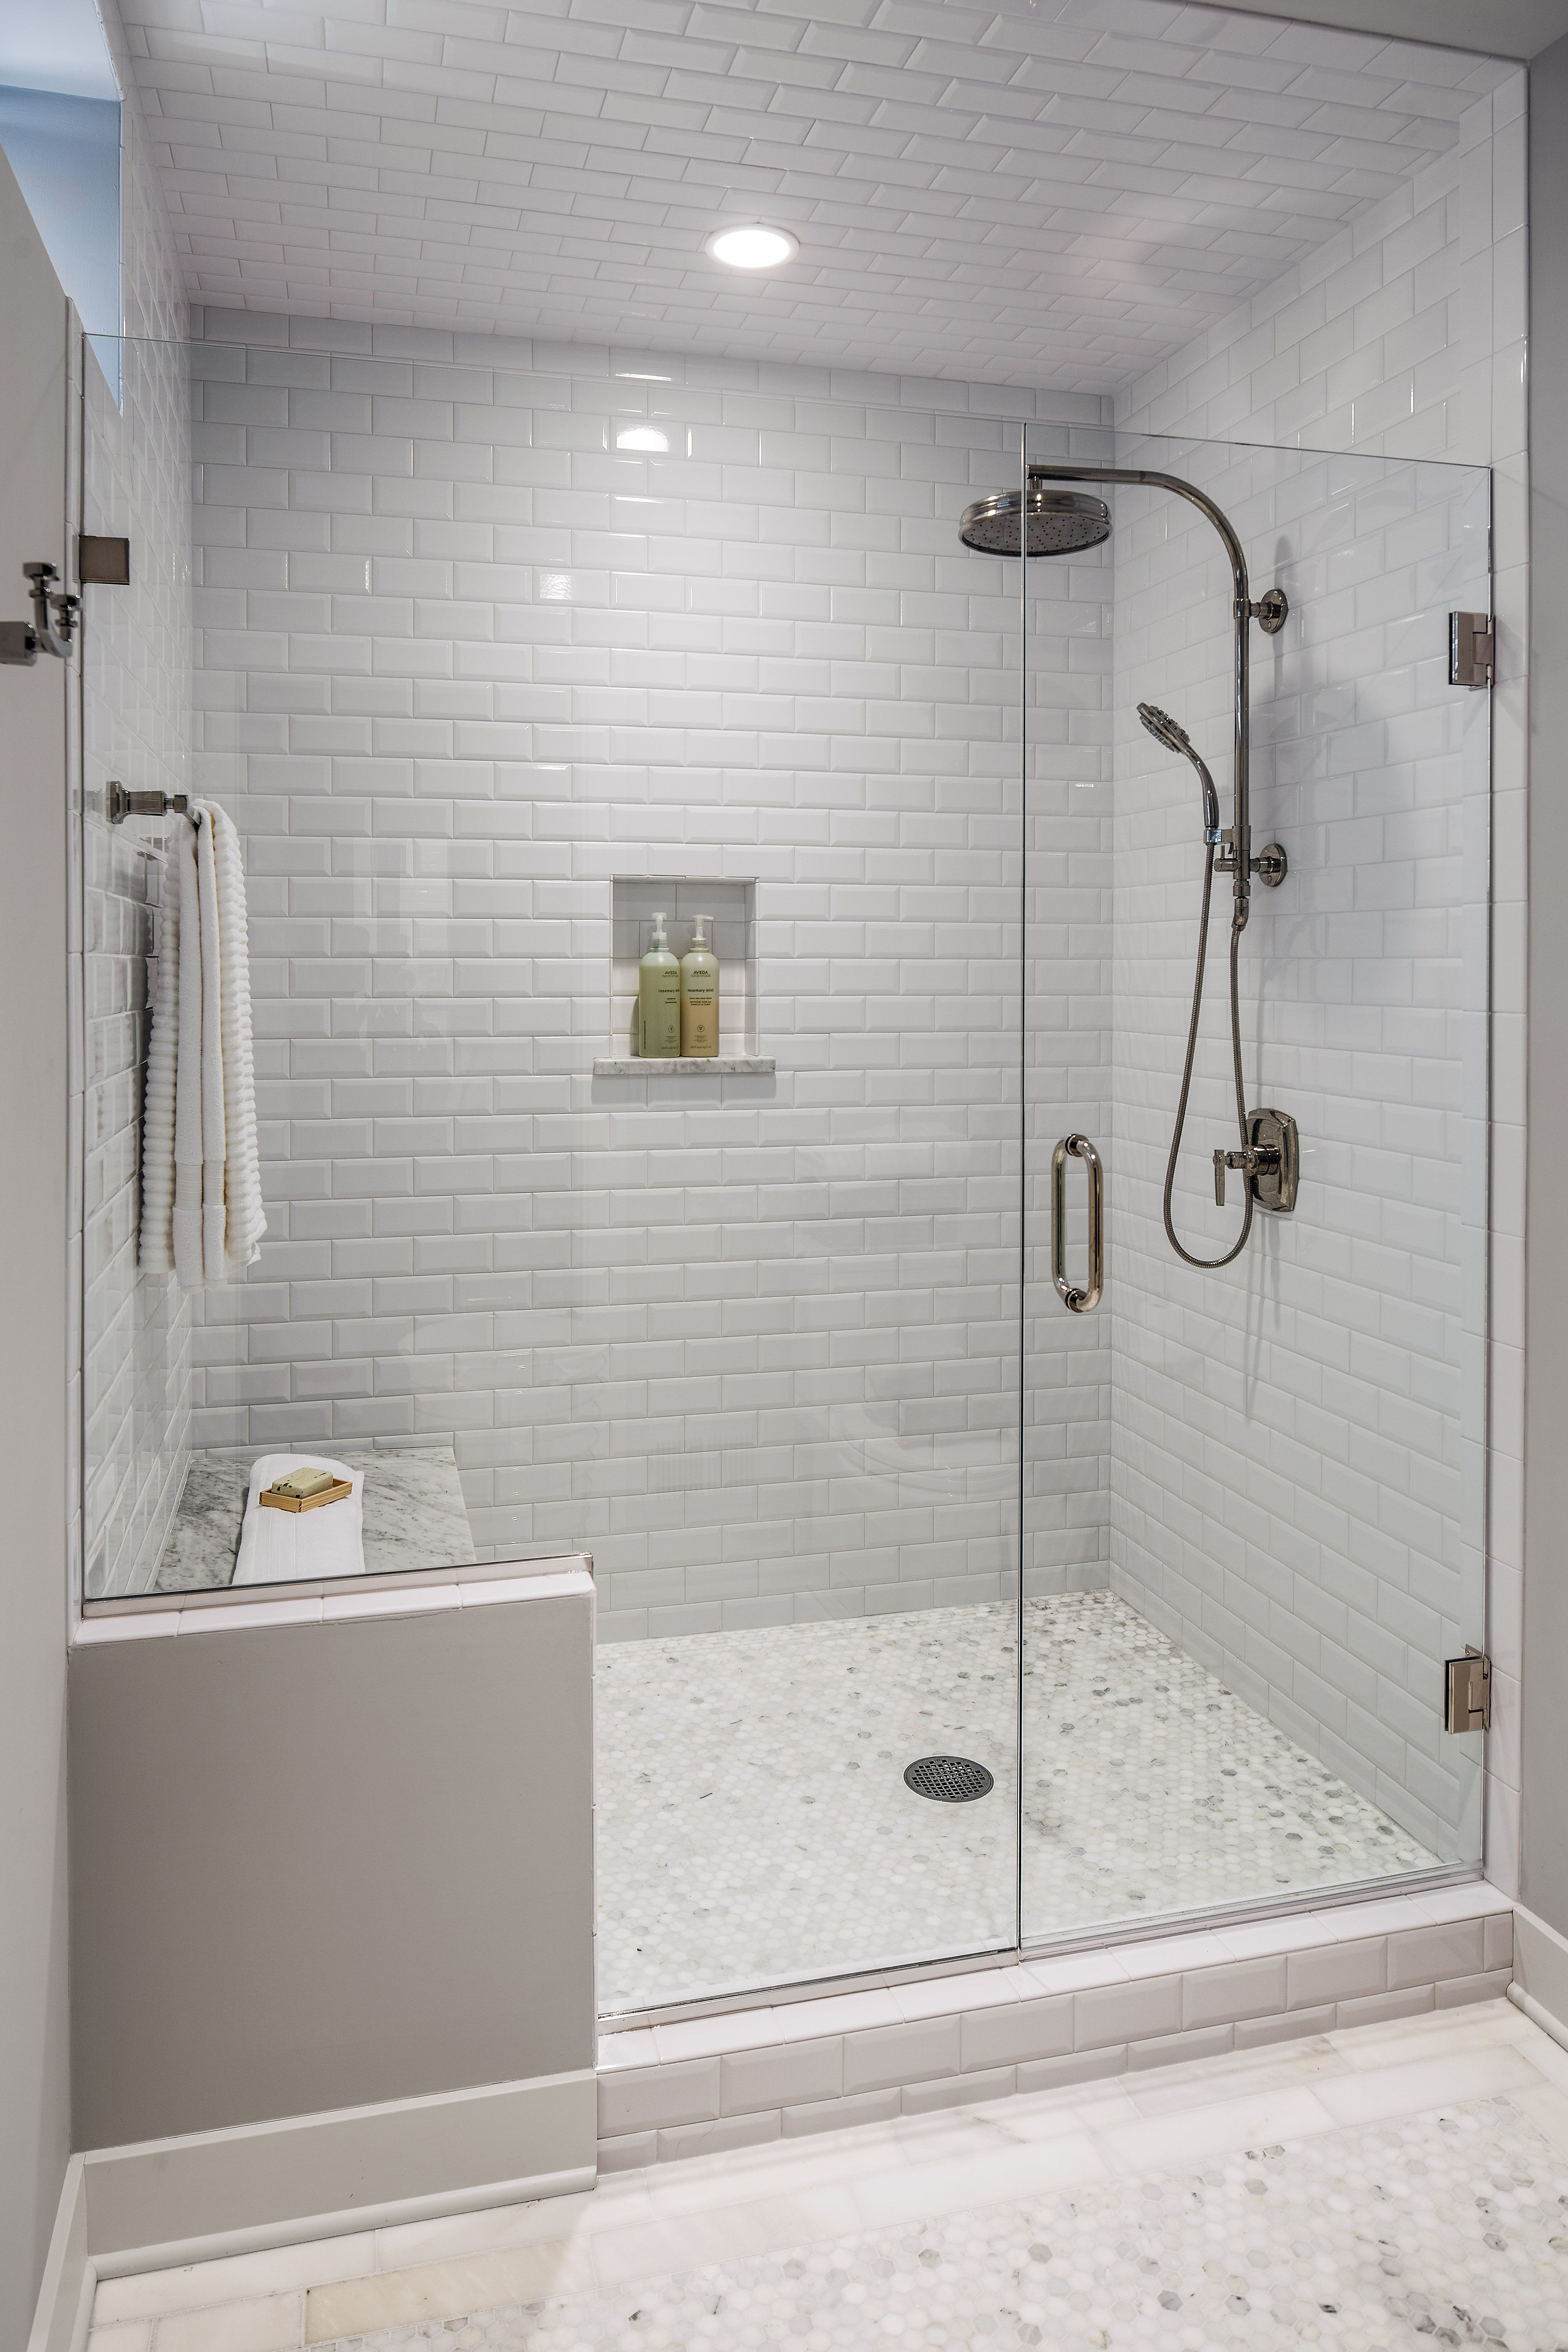 Bath With Shower The Guest Bath Had A Shower Area That Was Dated And Confining A